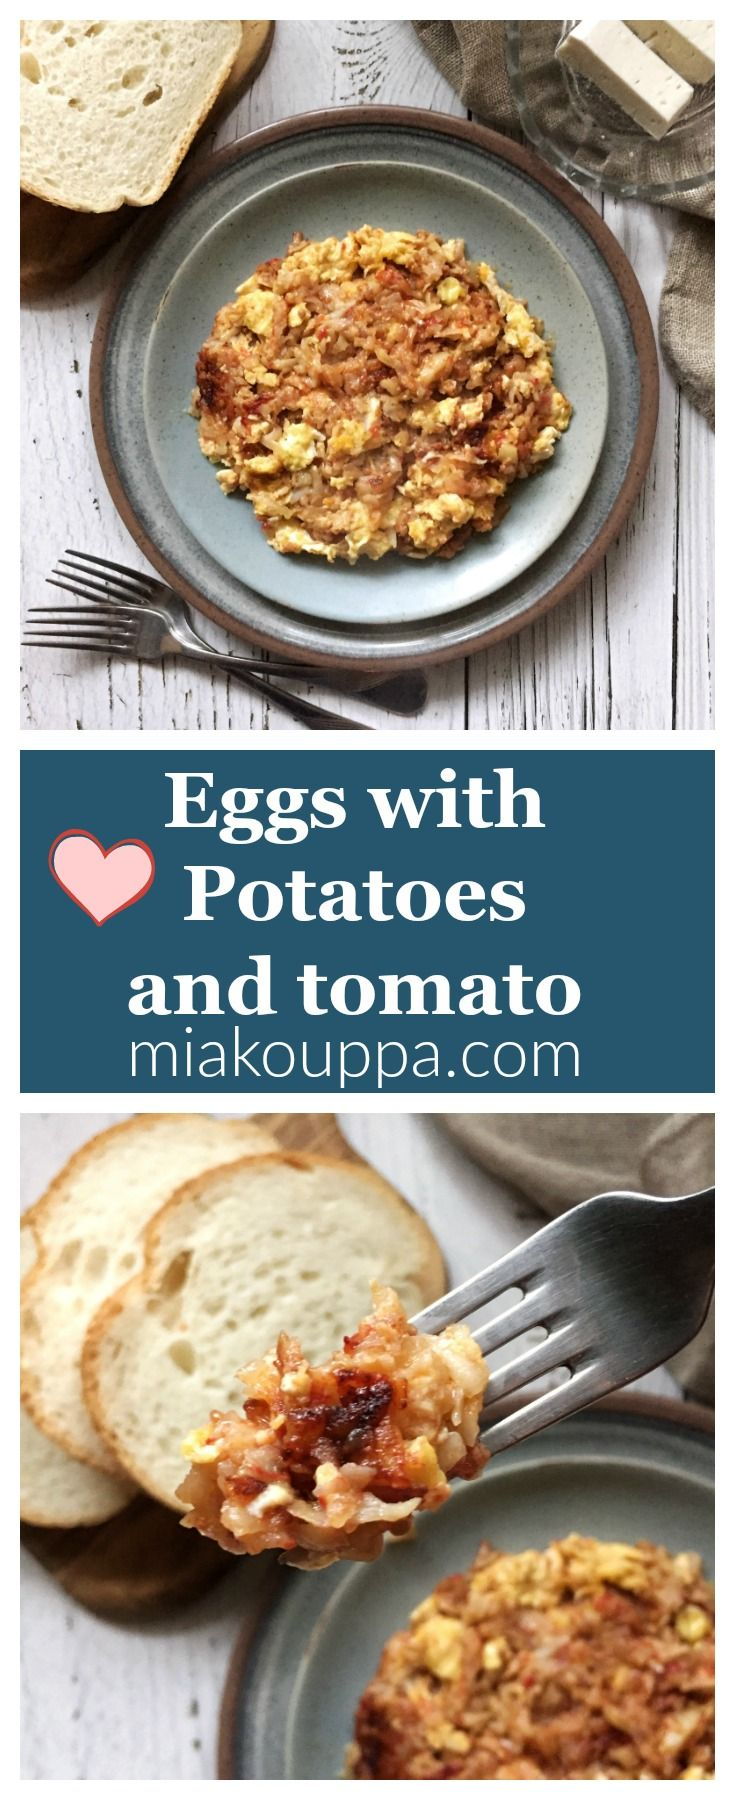 Eggs with potatoes and tomato an easy quick and delicious recipe an easy quick and delicious recipe for lunch international foodbalanced forumfinder Choice Image